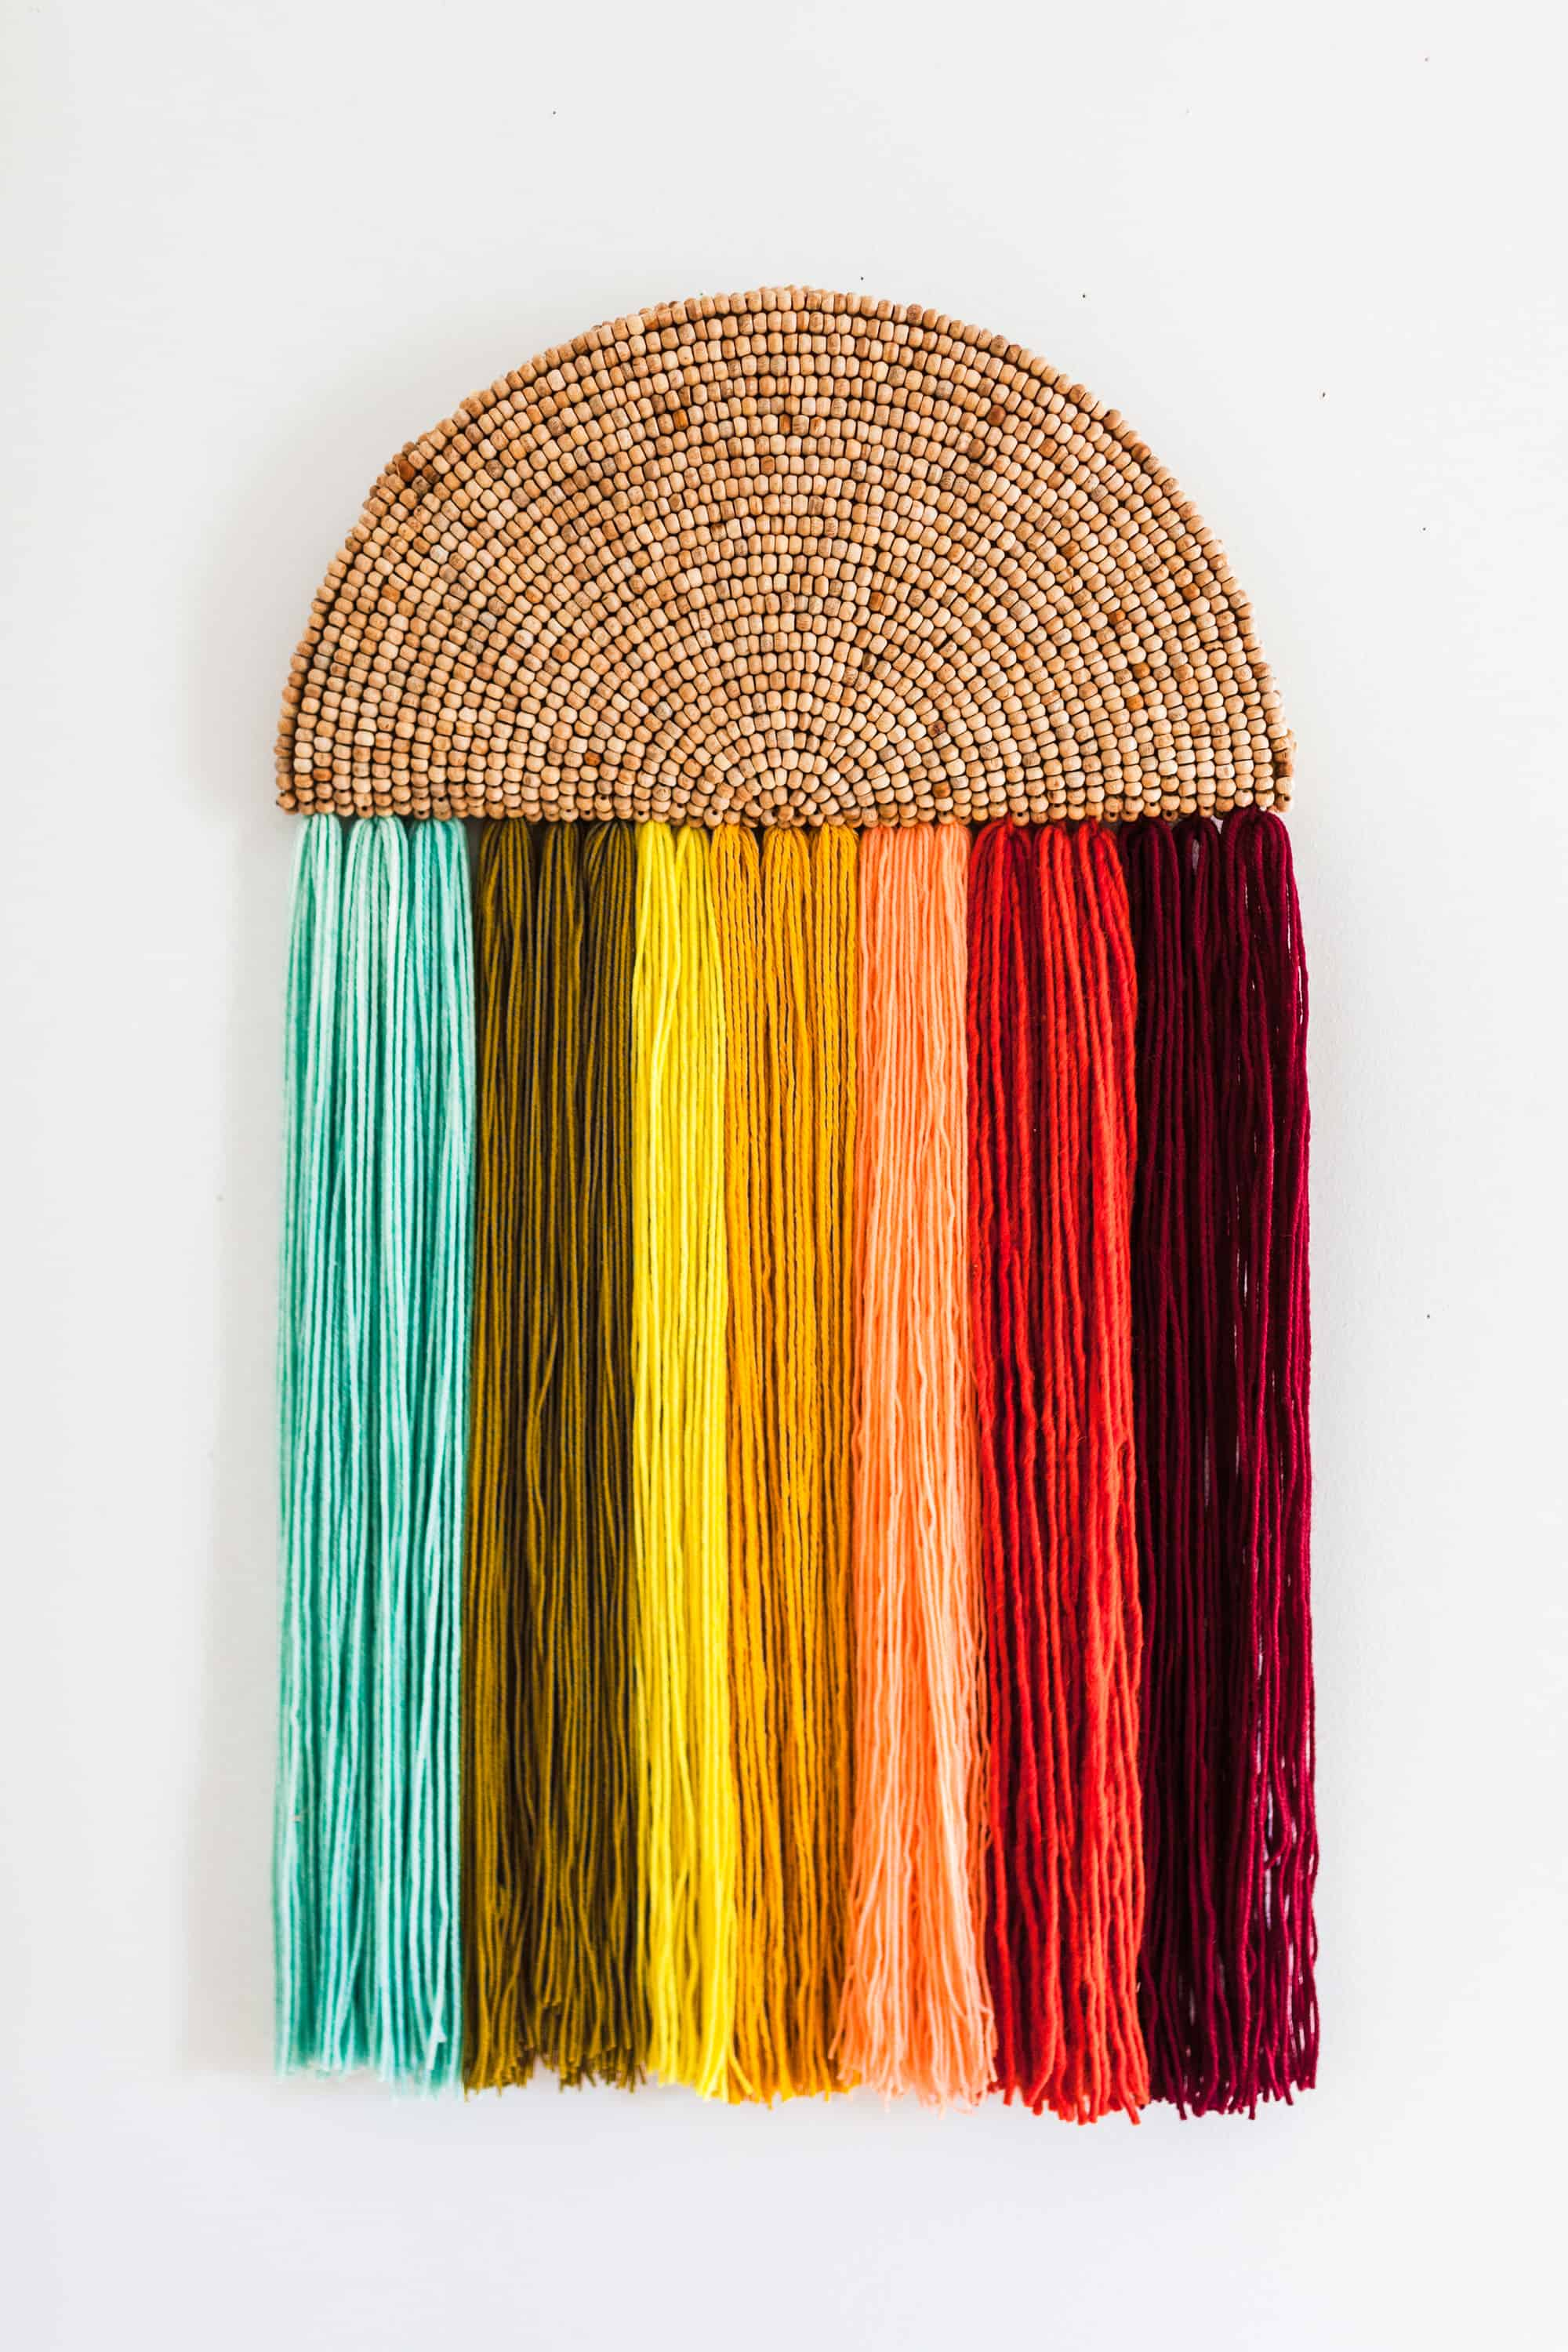 how to make yarn wall hanging